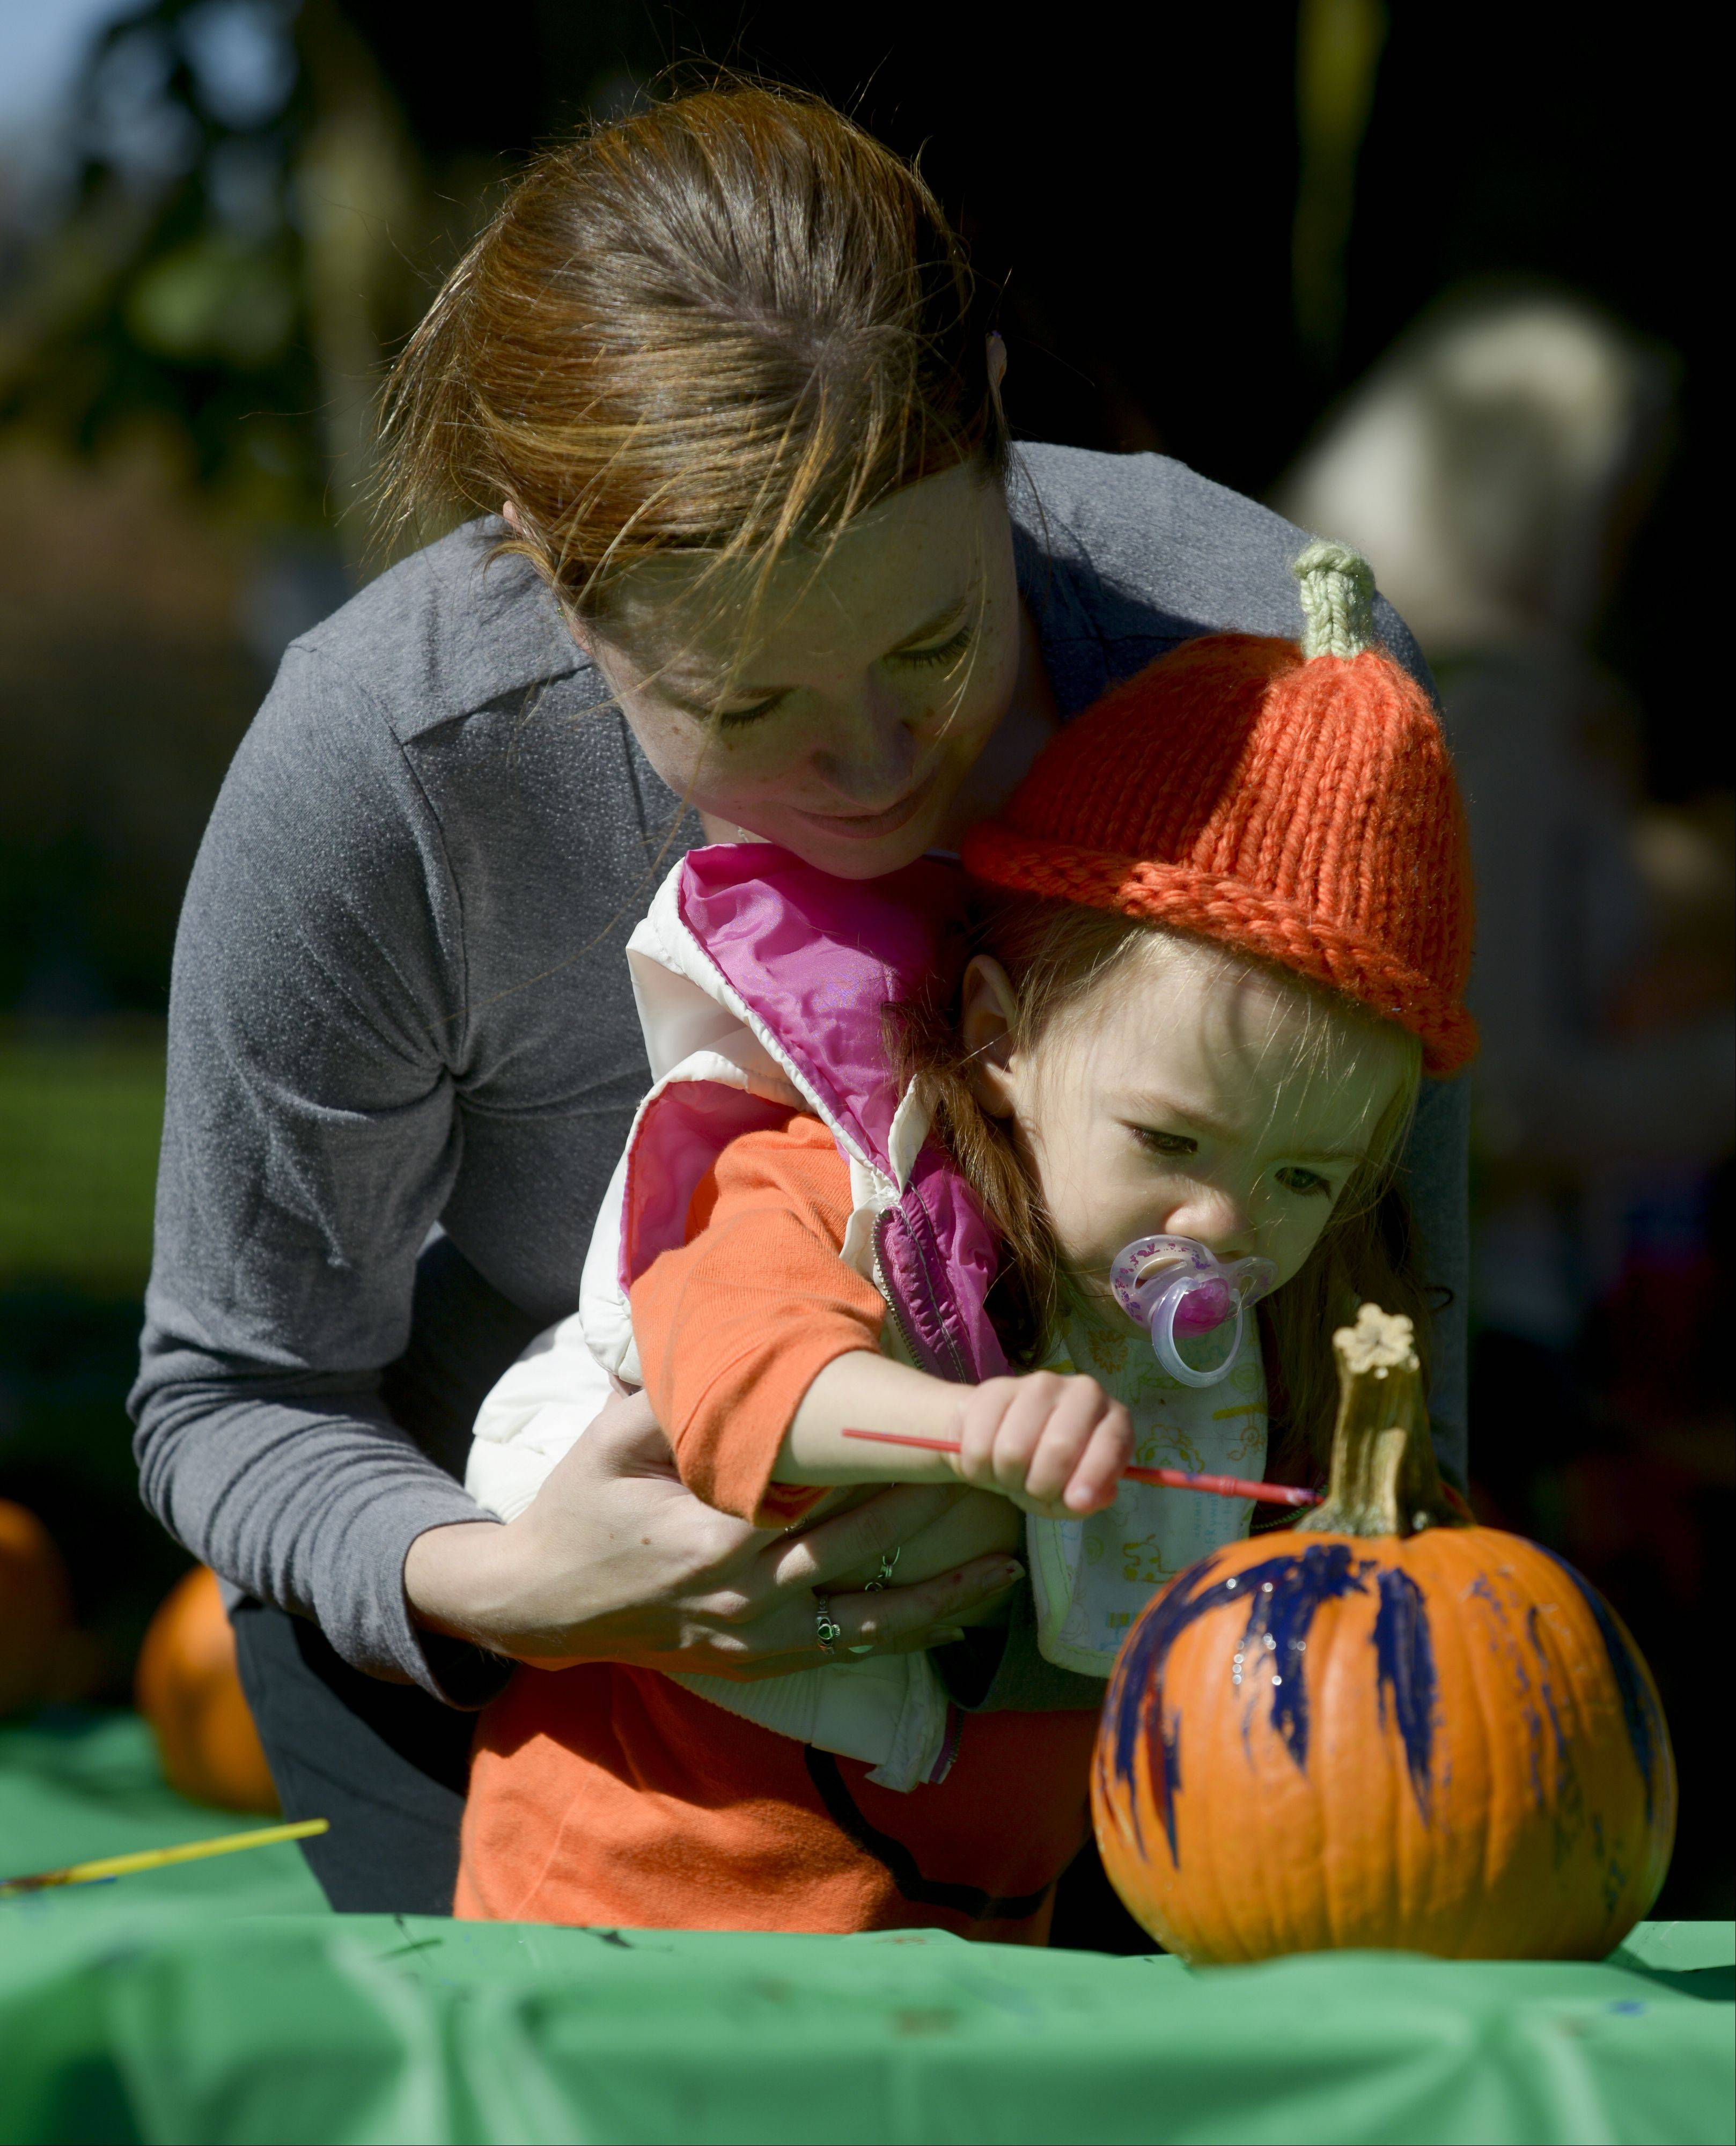 Jacqui Zurawski of Wheaton and her daughter Jozie, 2, paint a pumpkin during the Danada Fall Festival on Sunday in Wheaton.